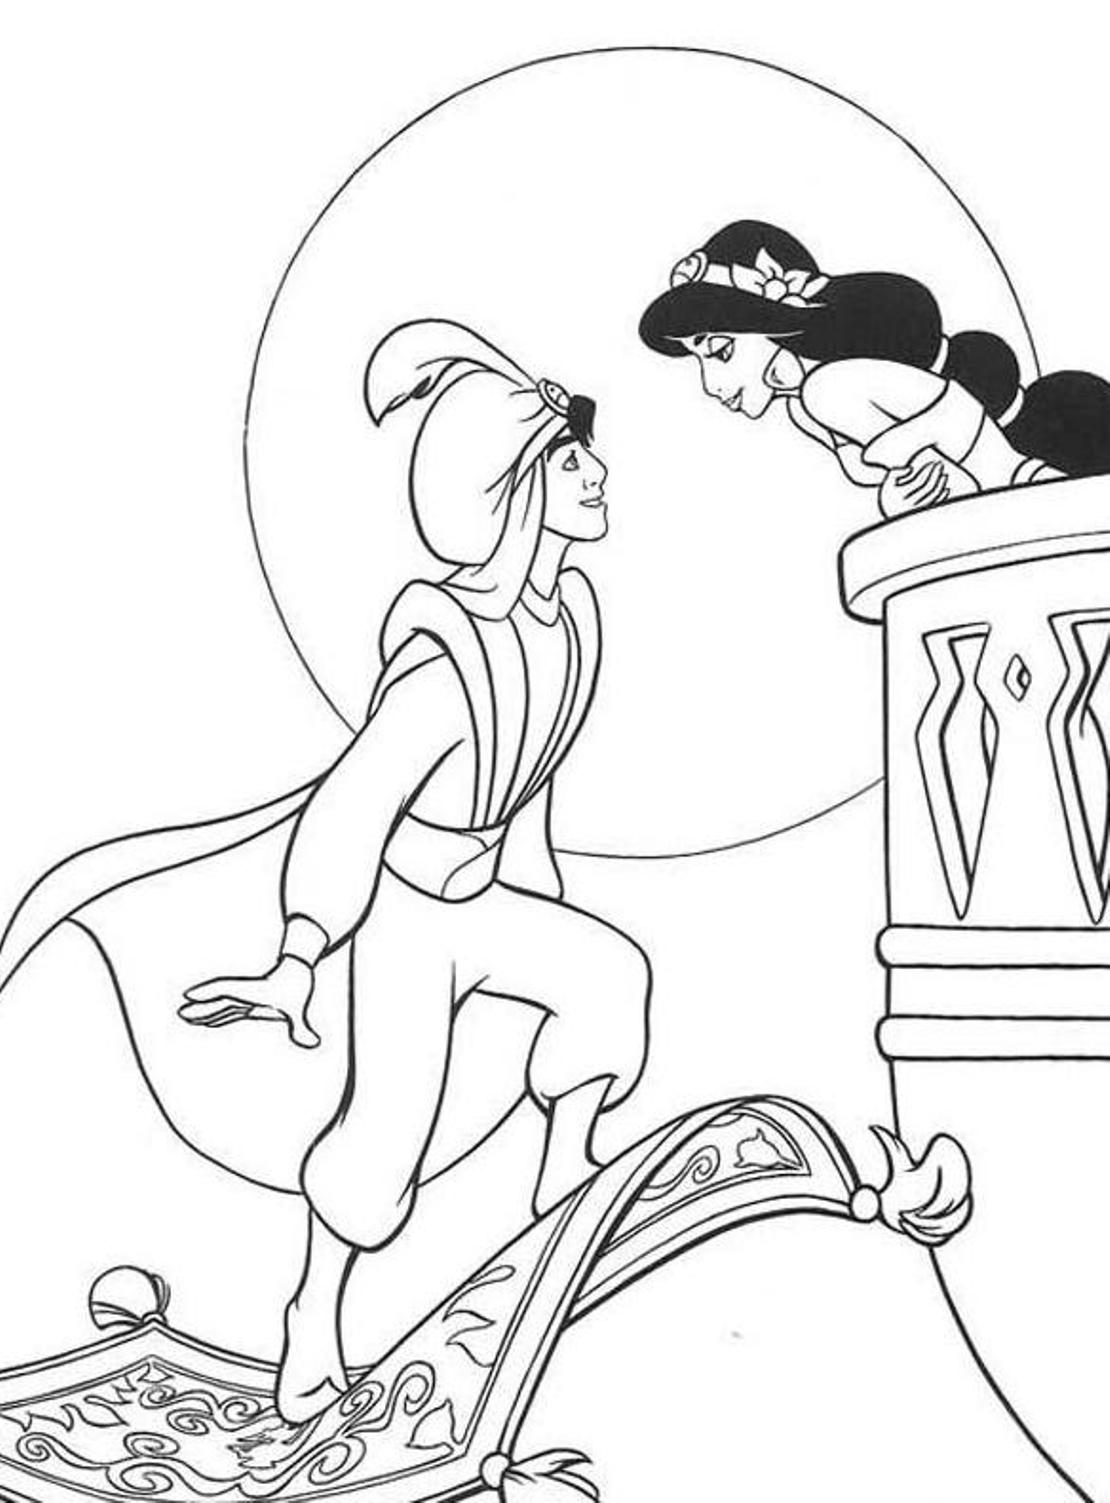 aladdin characters coloring pages aladdin coloring pages disneyclipscom aladdin characters pages coloring